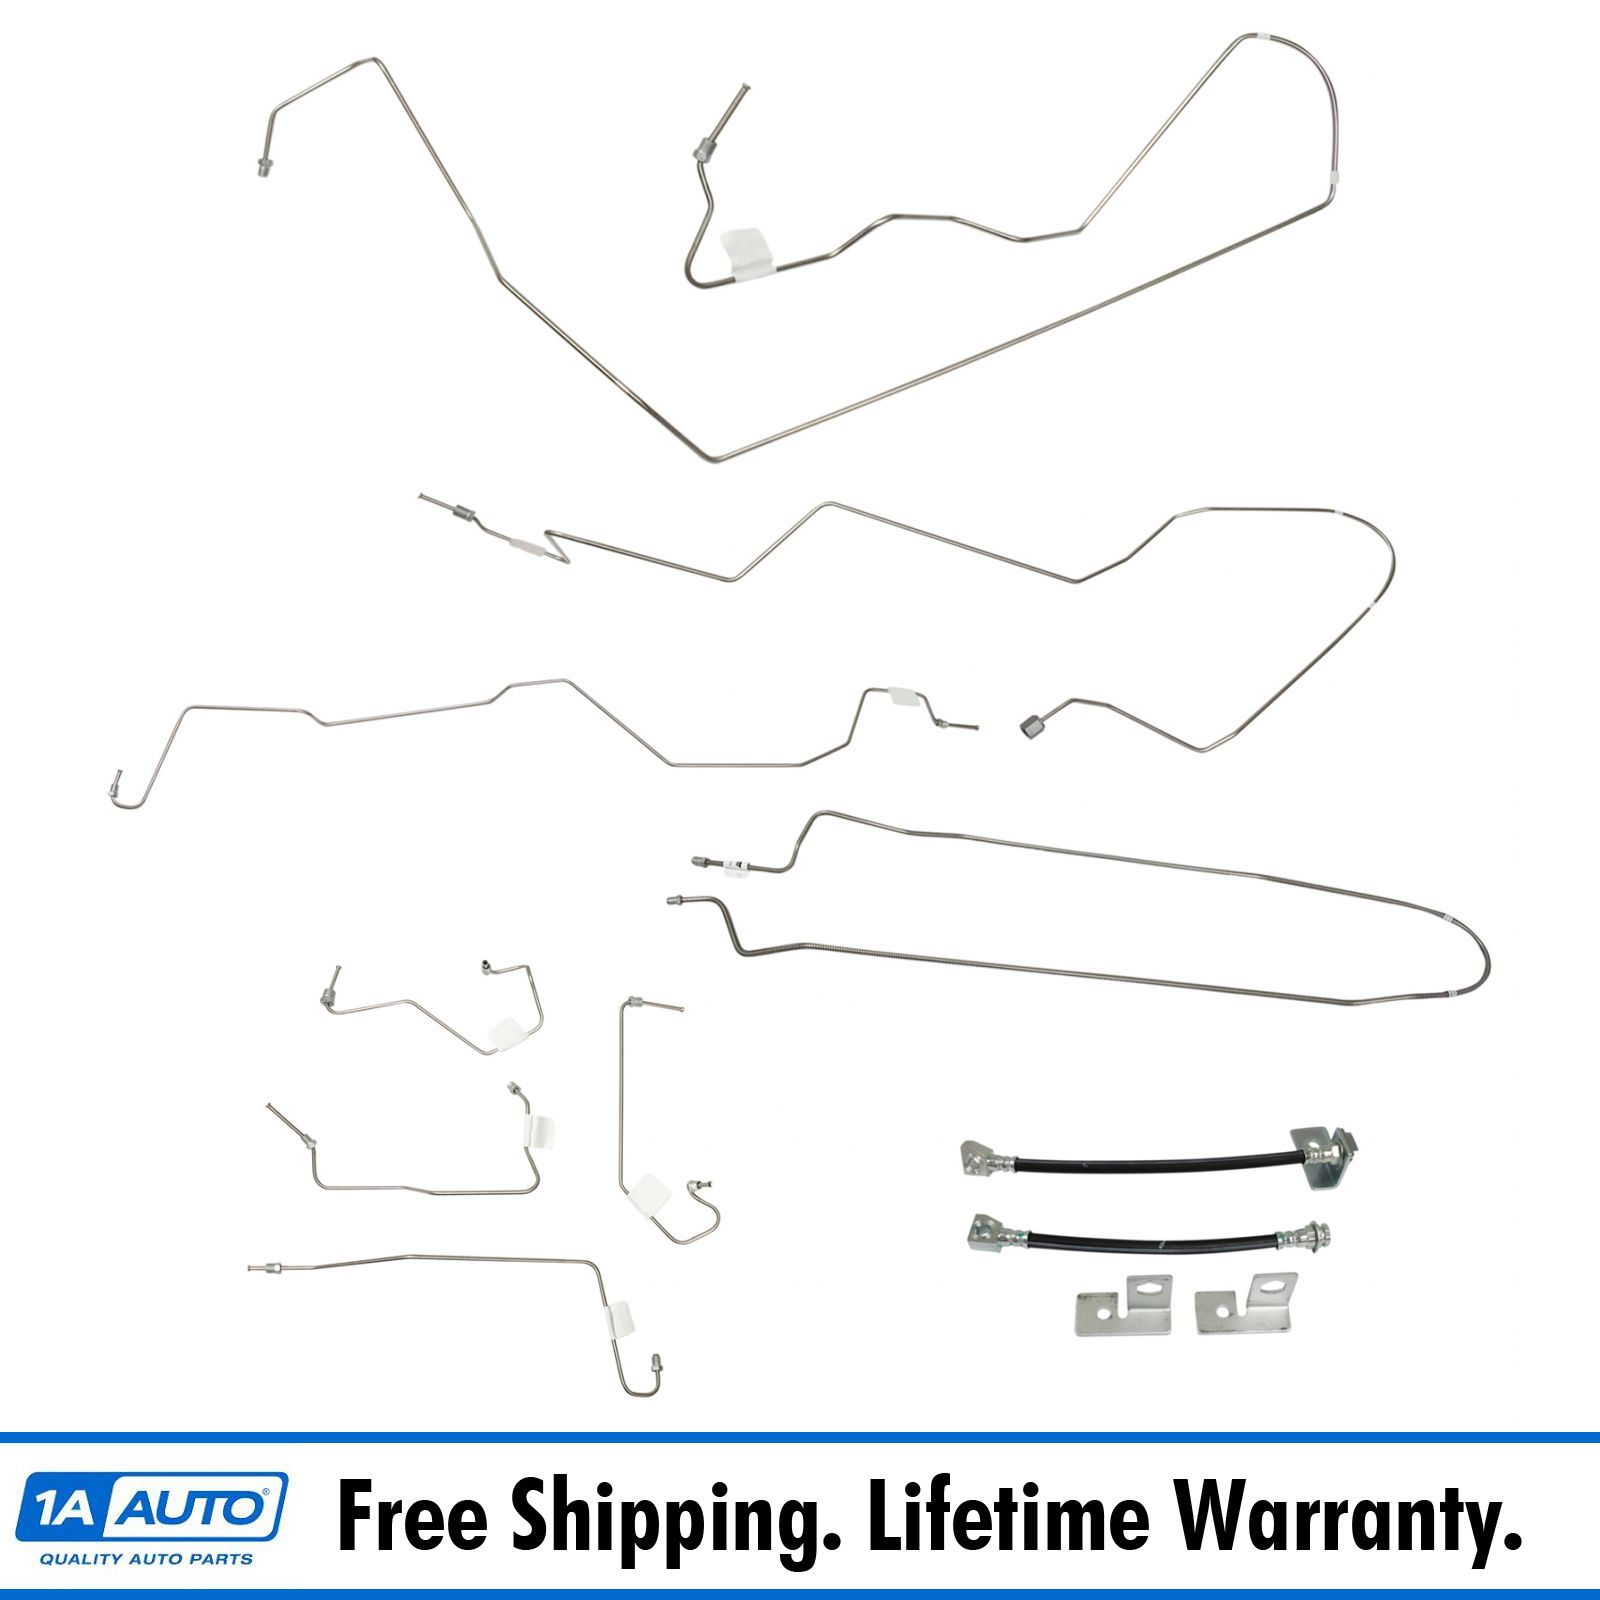 35 Ford F150 Brake Lines Diagram